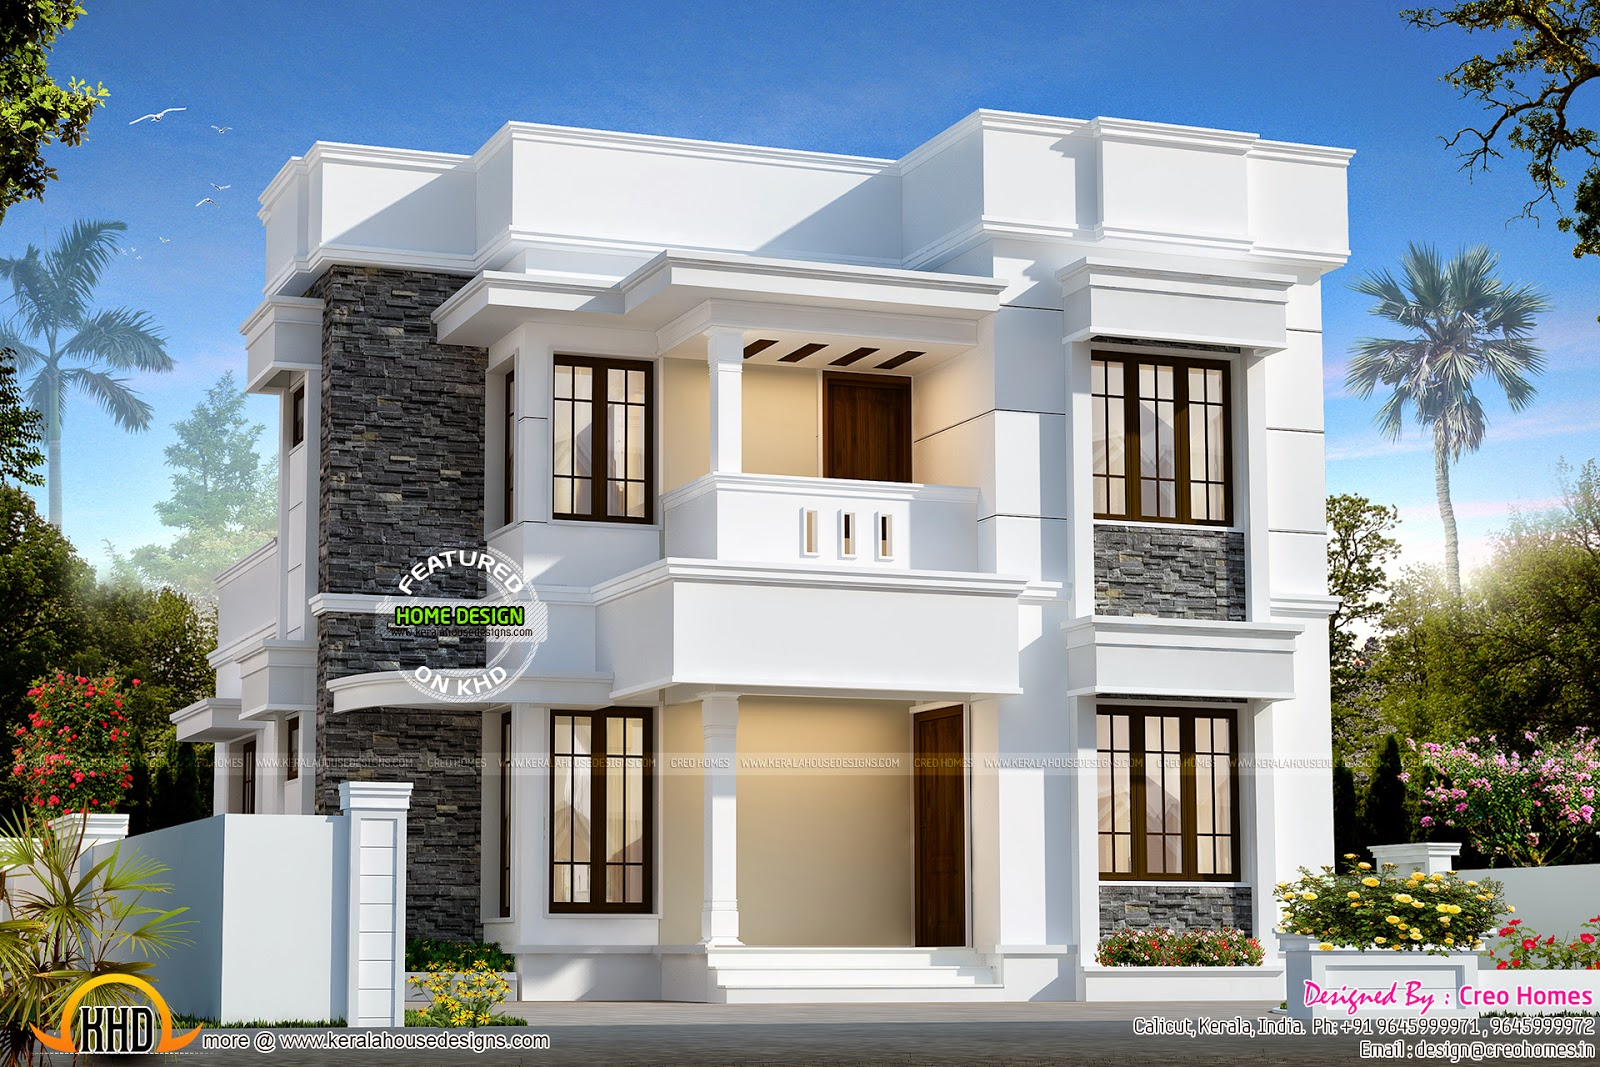 Beautiful modern contemporary home keralahousedesigns for Beautiful modern home designs